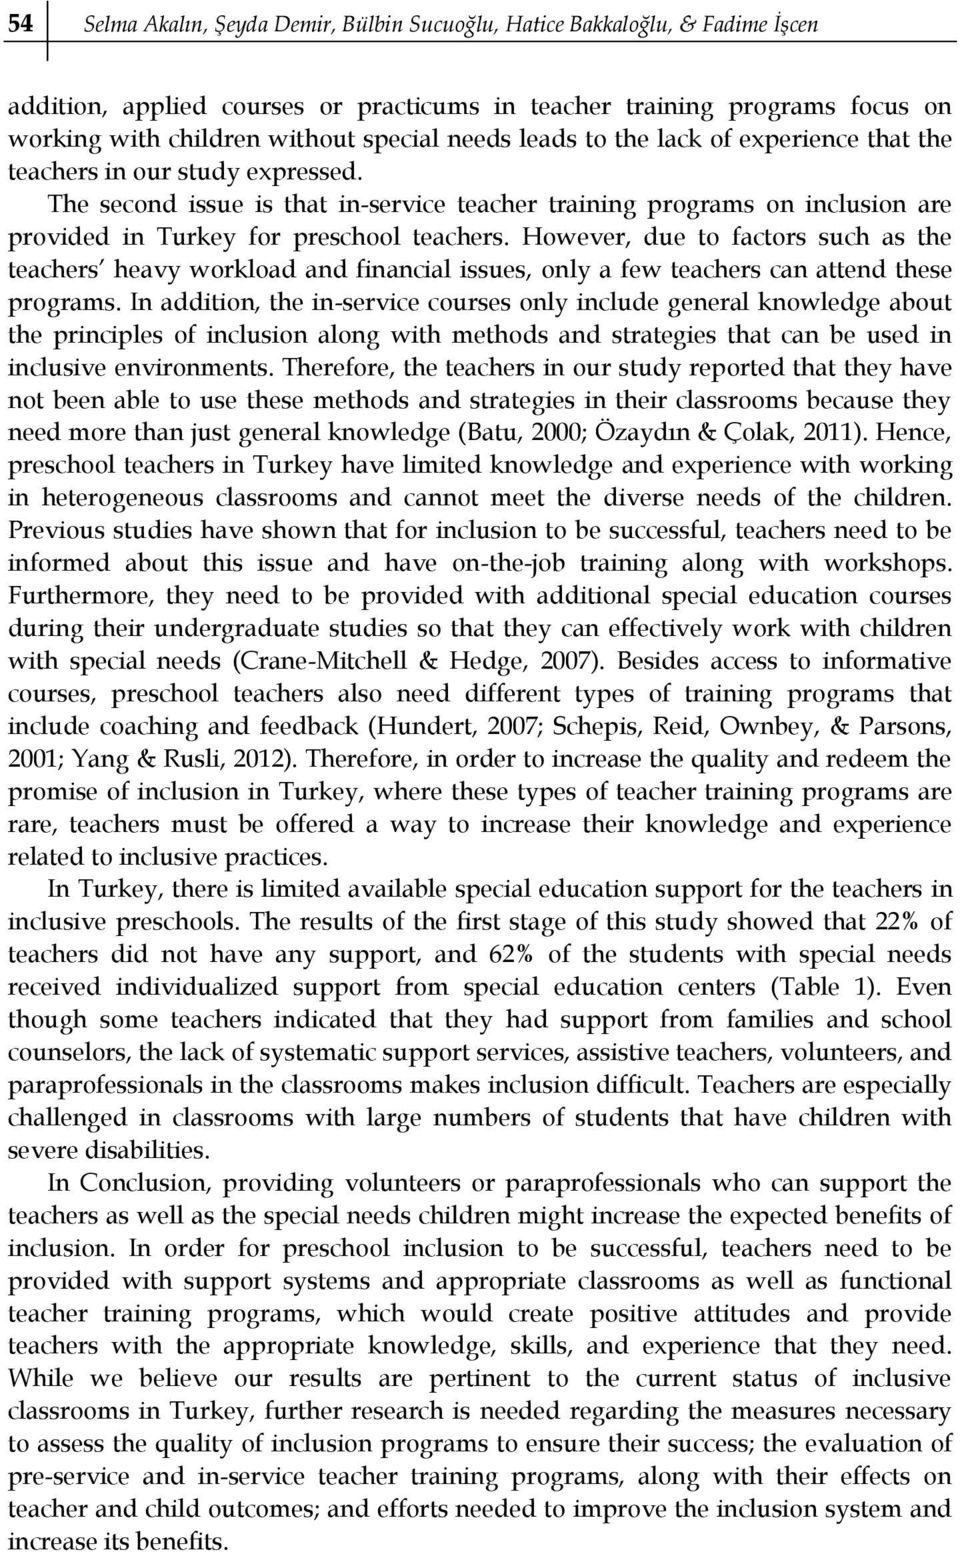 The second issue is that in-service teacher training programs on inclusion are provided in Turkey for preschool teachers.